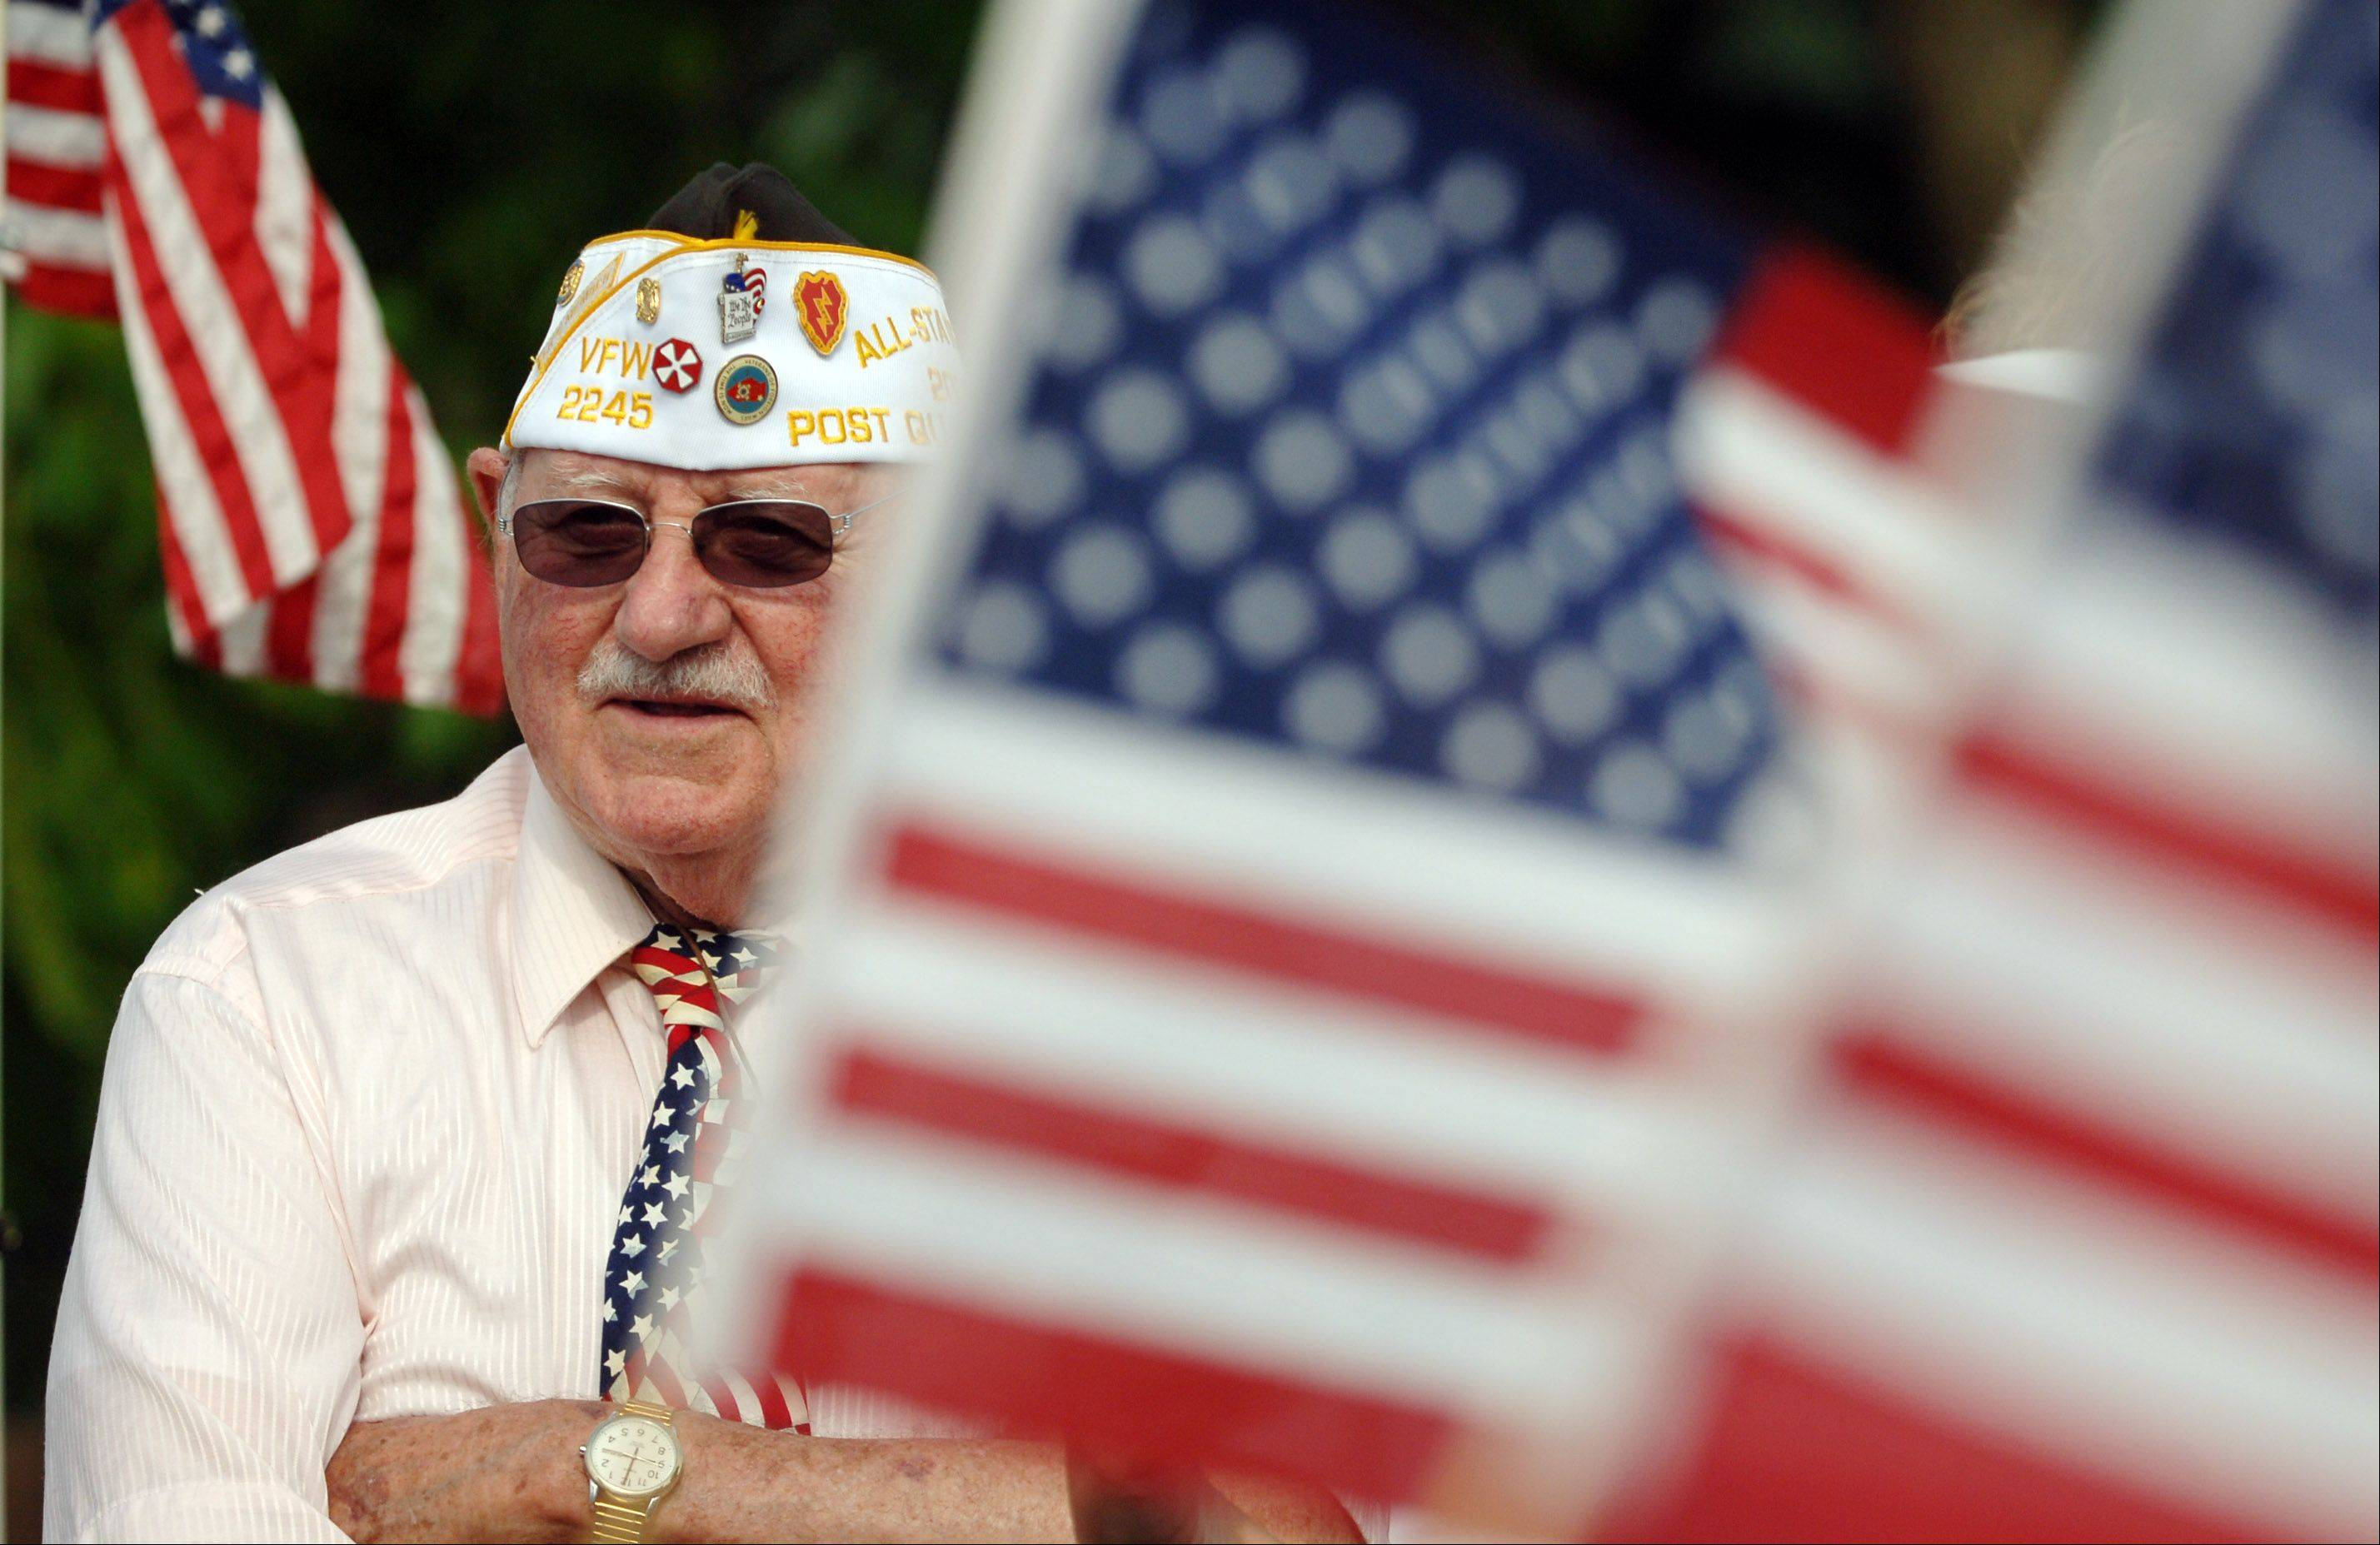 Bob Wegge of the VFW Post 2245 is surrounded by red, white and blue before the kickoff of Monday's Memorial Day parade in Grayslake.